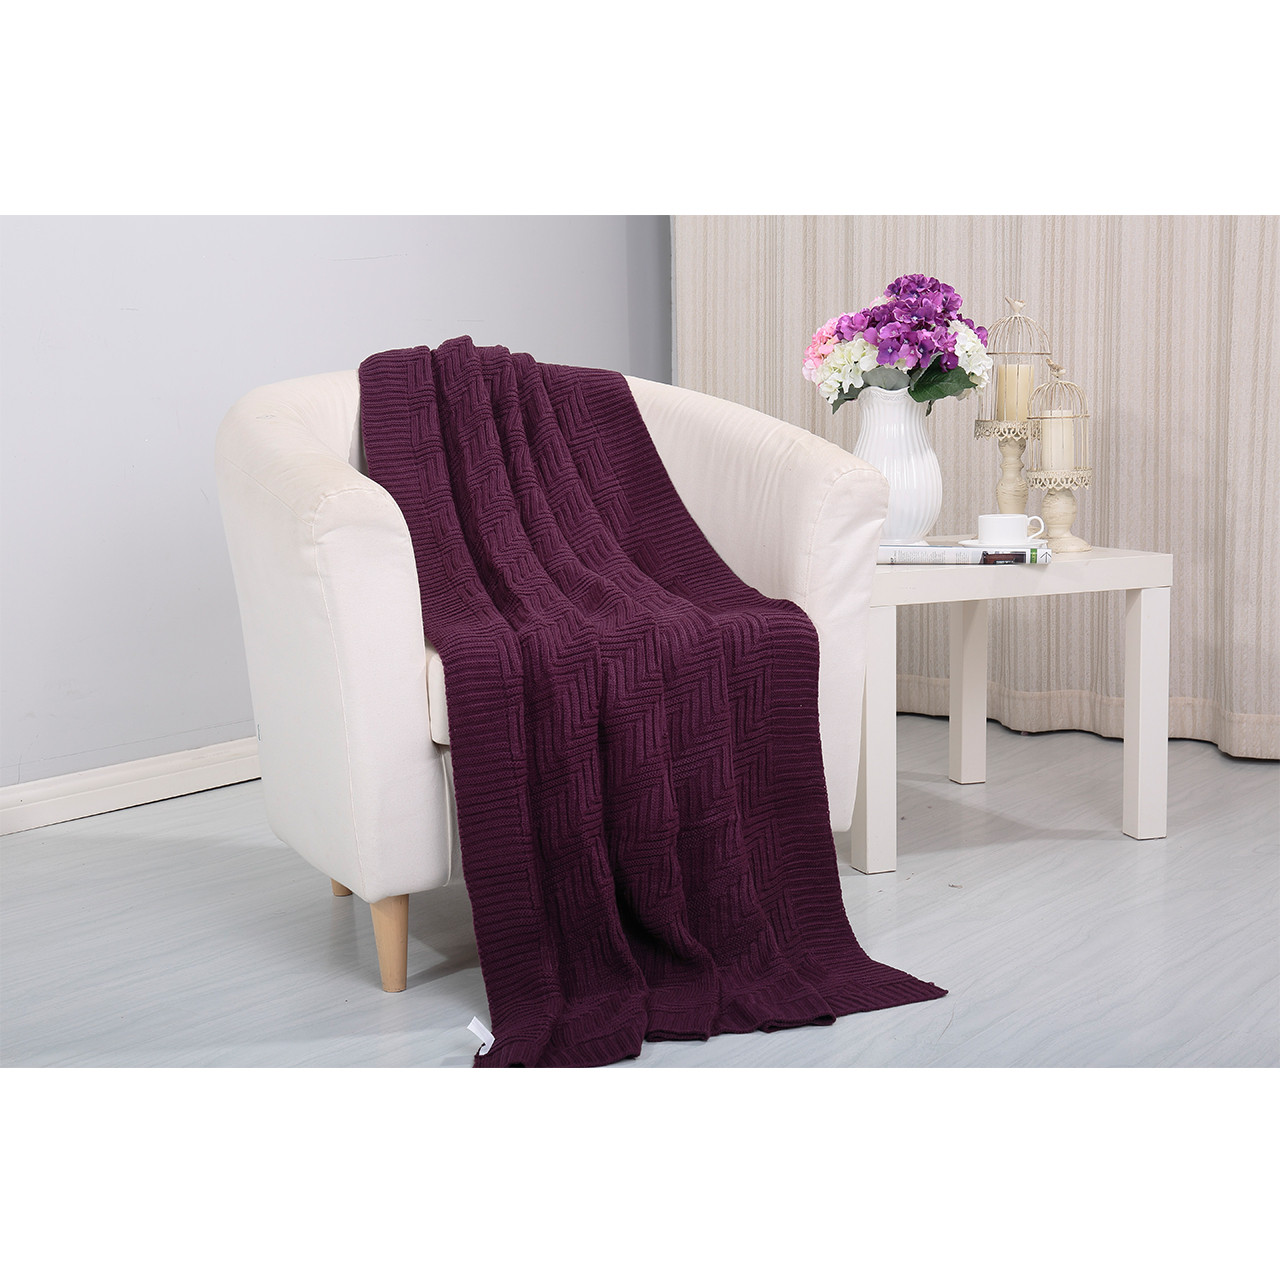 Pietra Knitted Throw Couch Cover Sofa Blanket, 50x60, Purple  Main